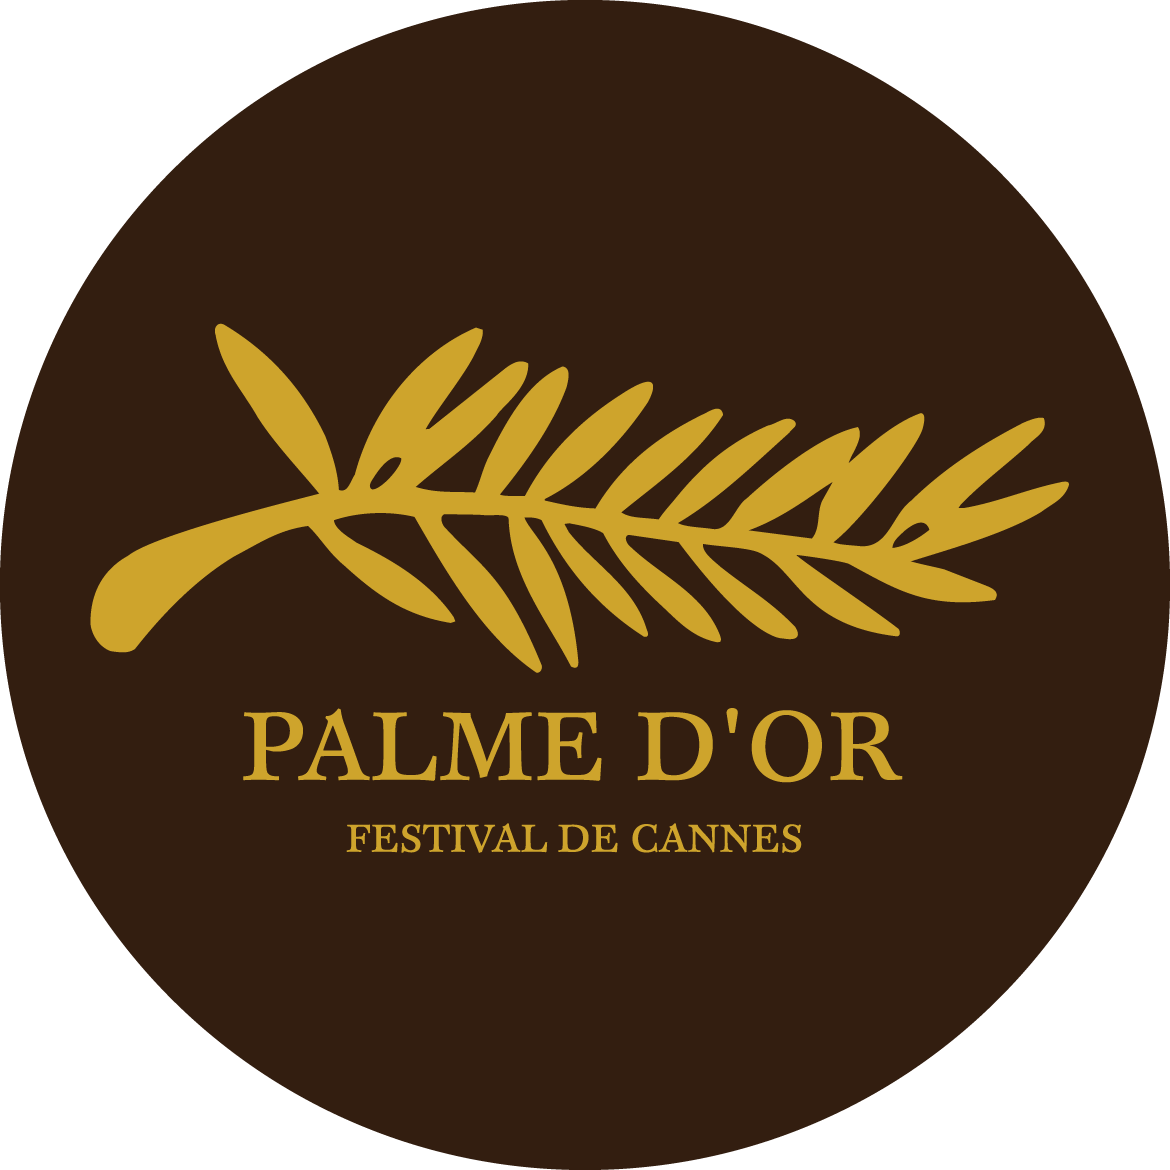 Cannes Film Festival - Palme d'Or's icon